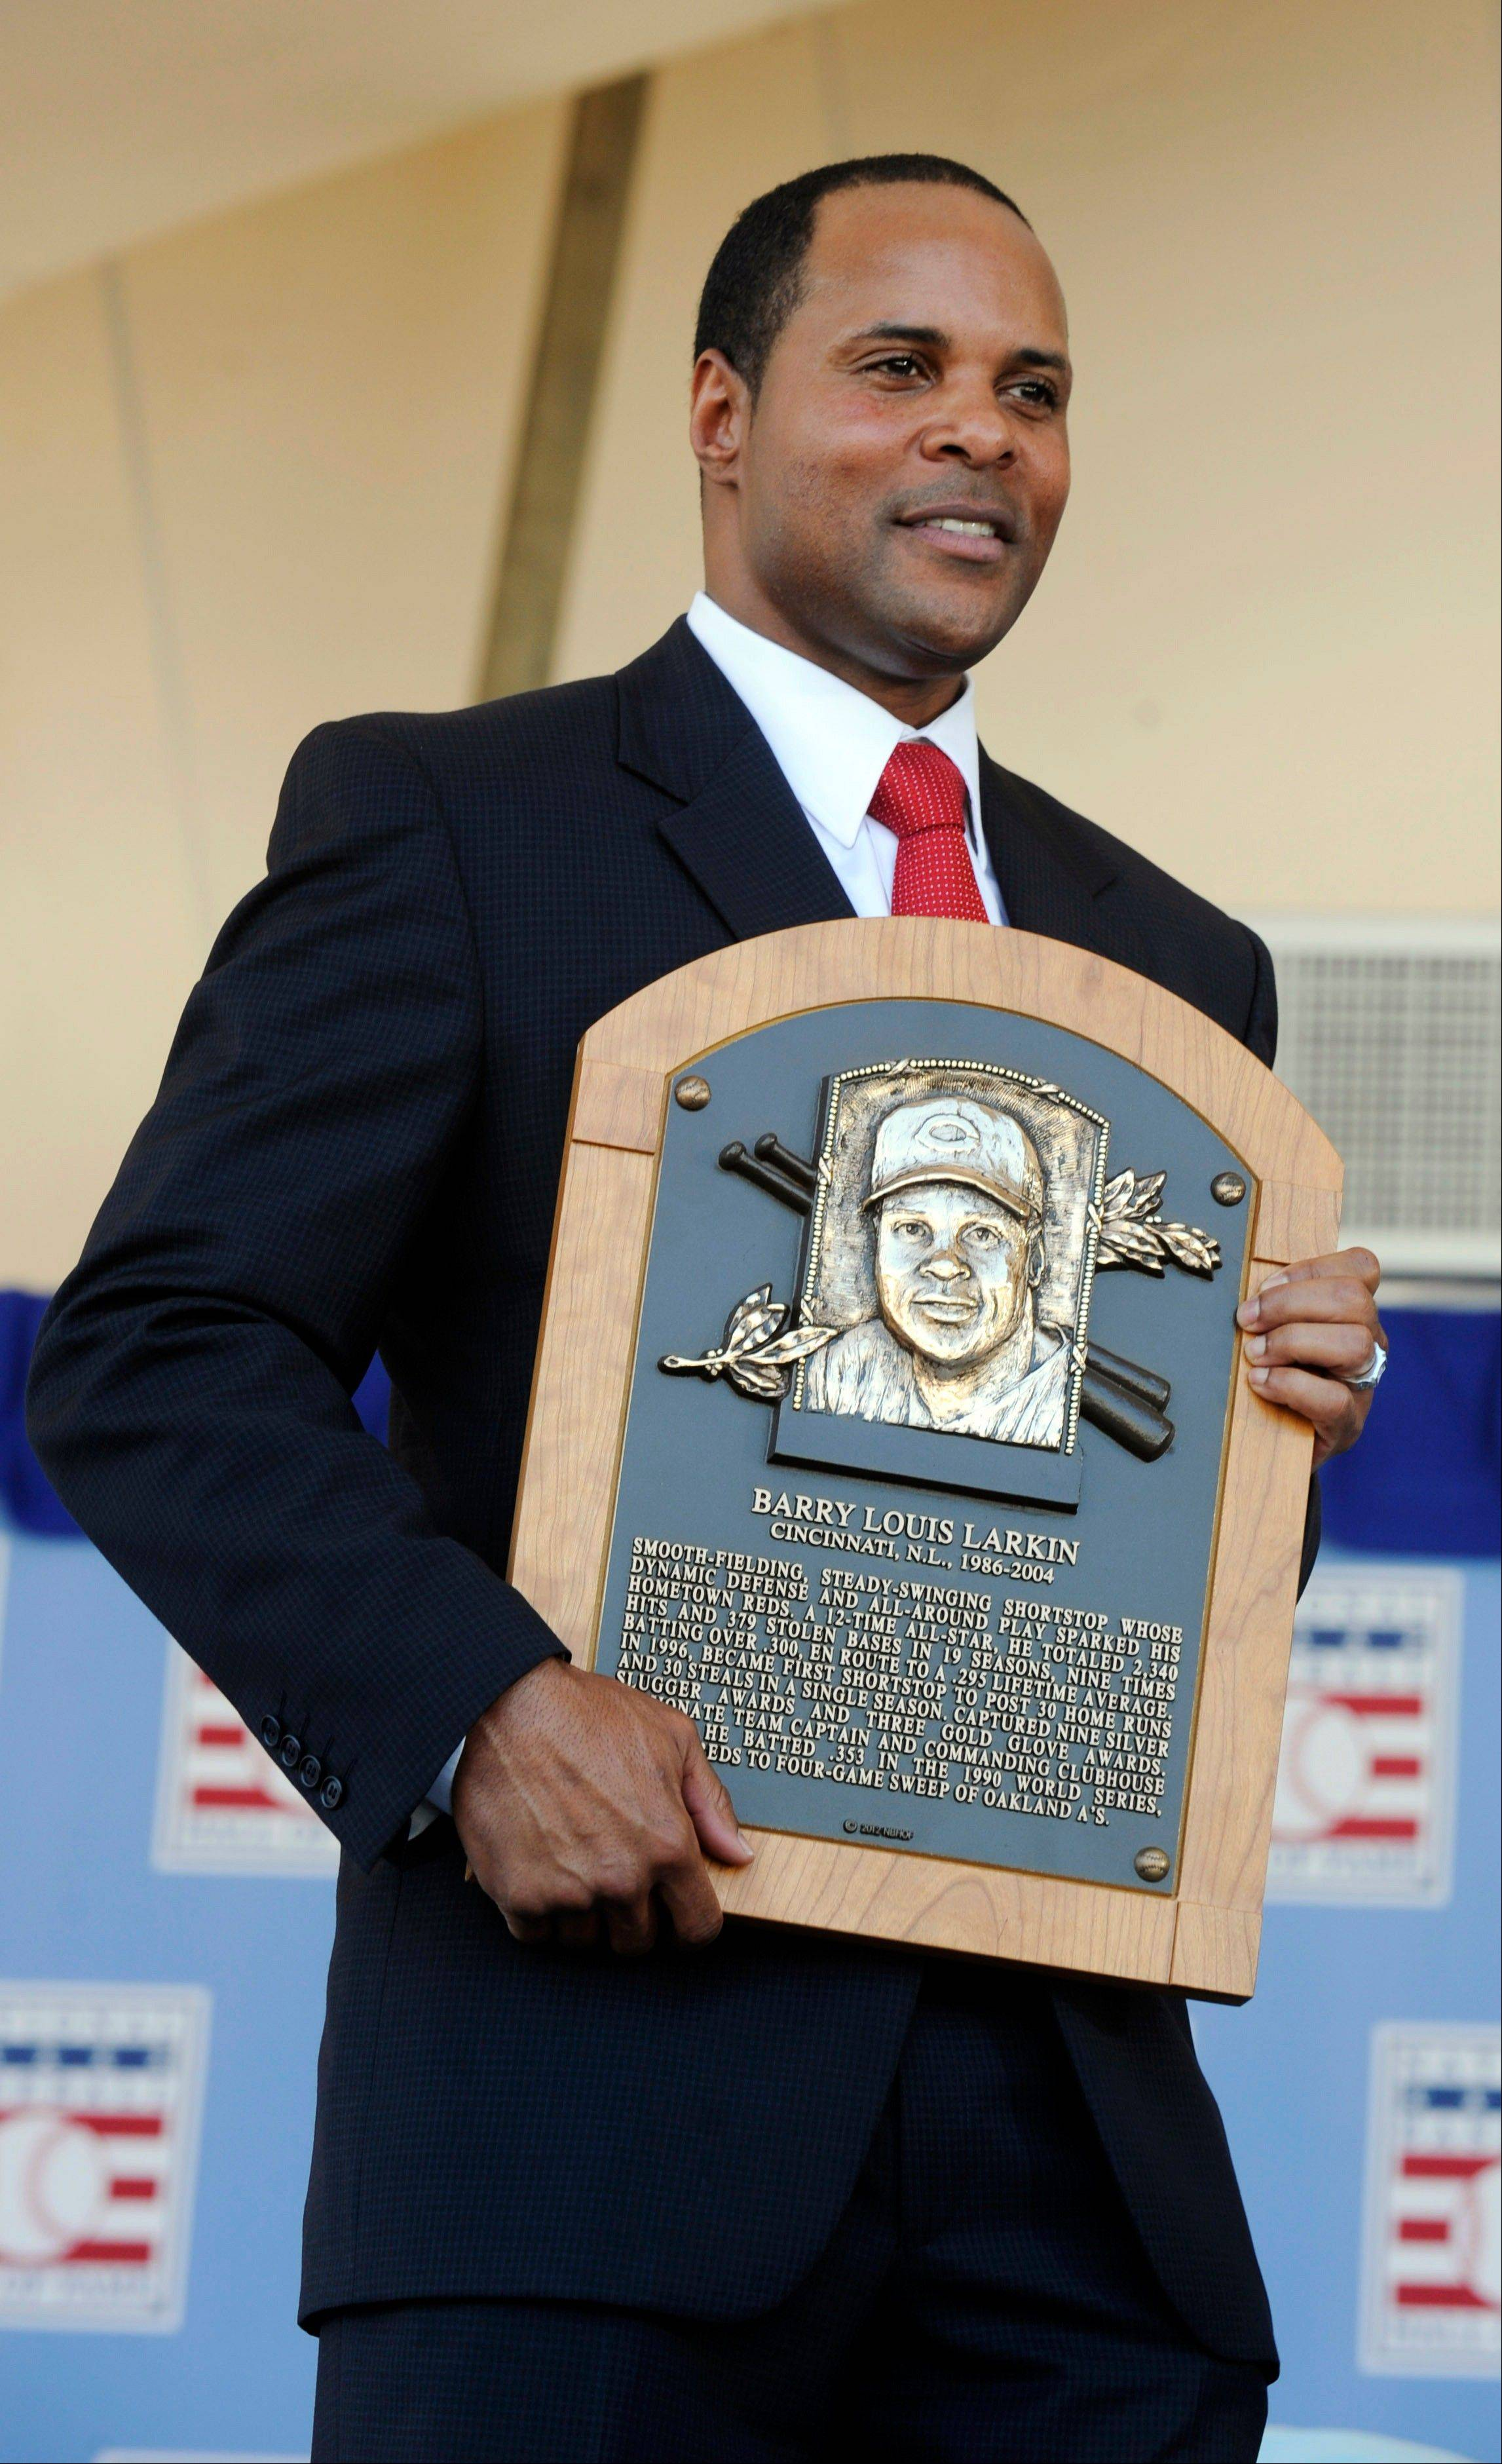 Former Cincinnati Reds star Barry Larkin was inducted into the National Baseball Hall of Fame in July. Next he'll manage Brazil's team in the qualifying round of the World Baseball Classic.